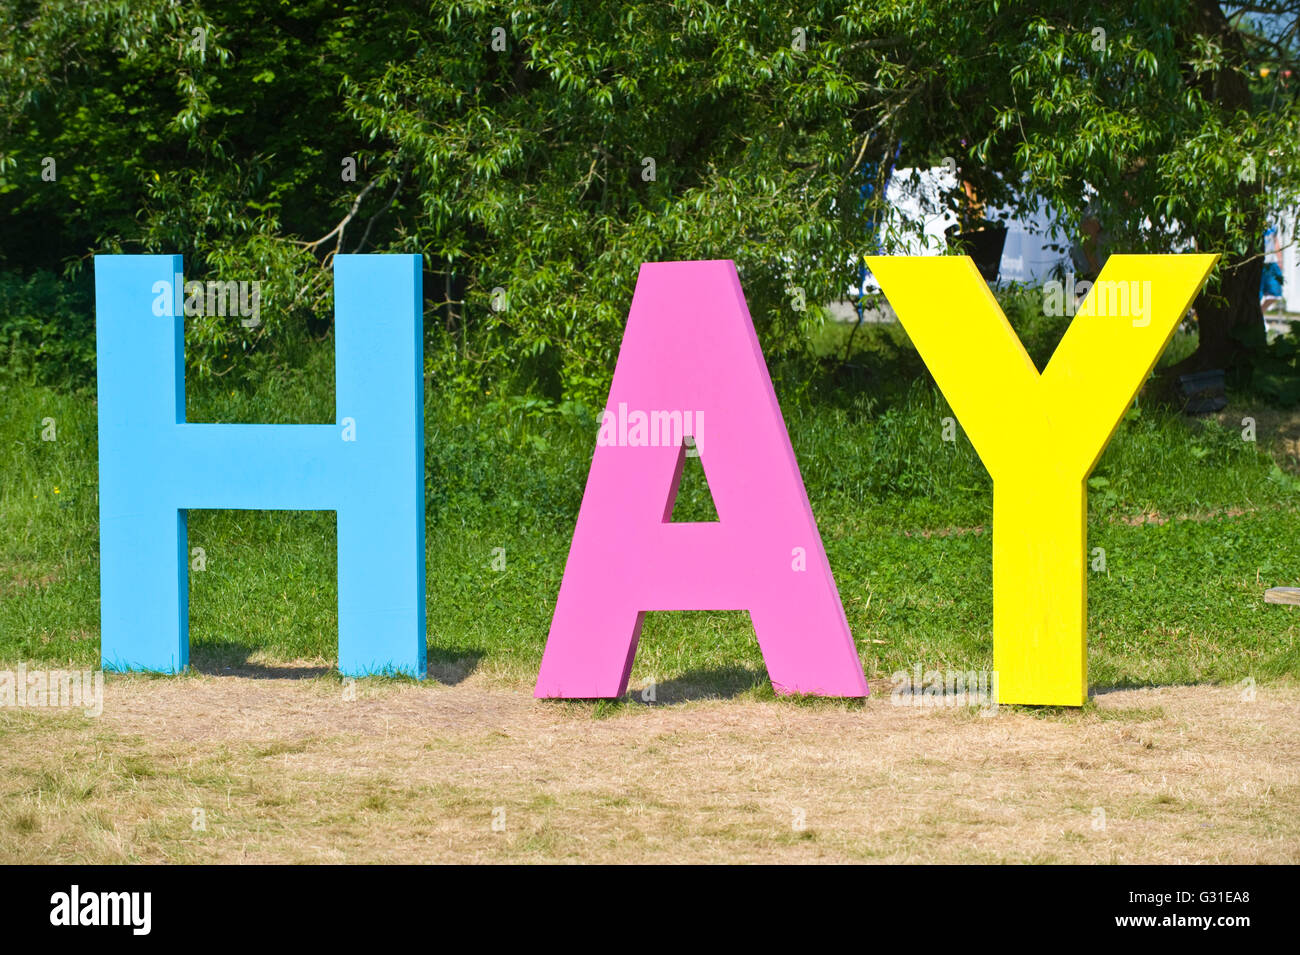 HAY sign at entrance to Hay Festival 2016 - Stock Image